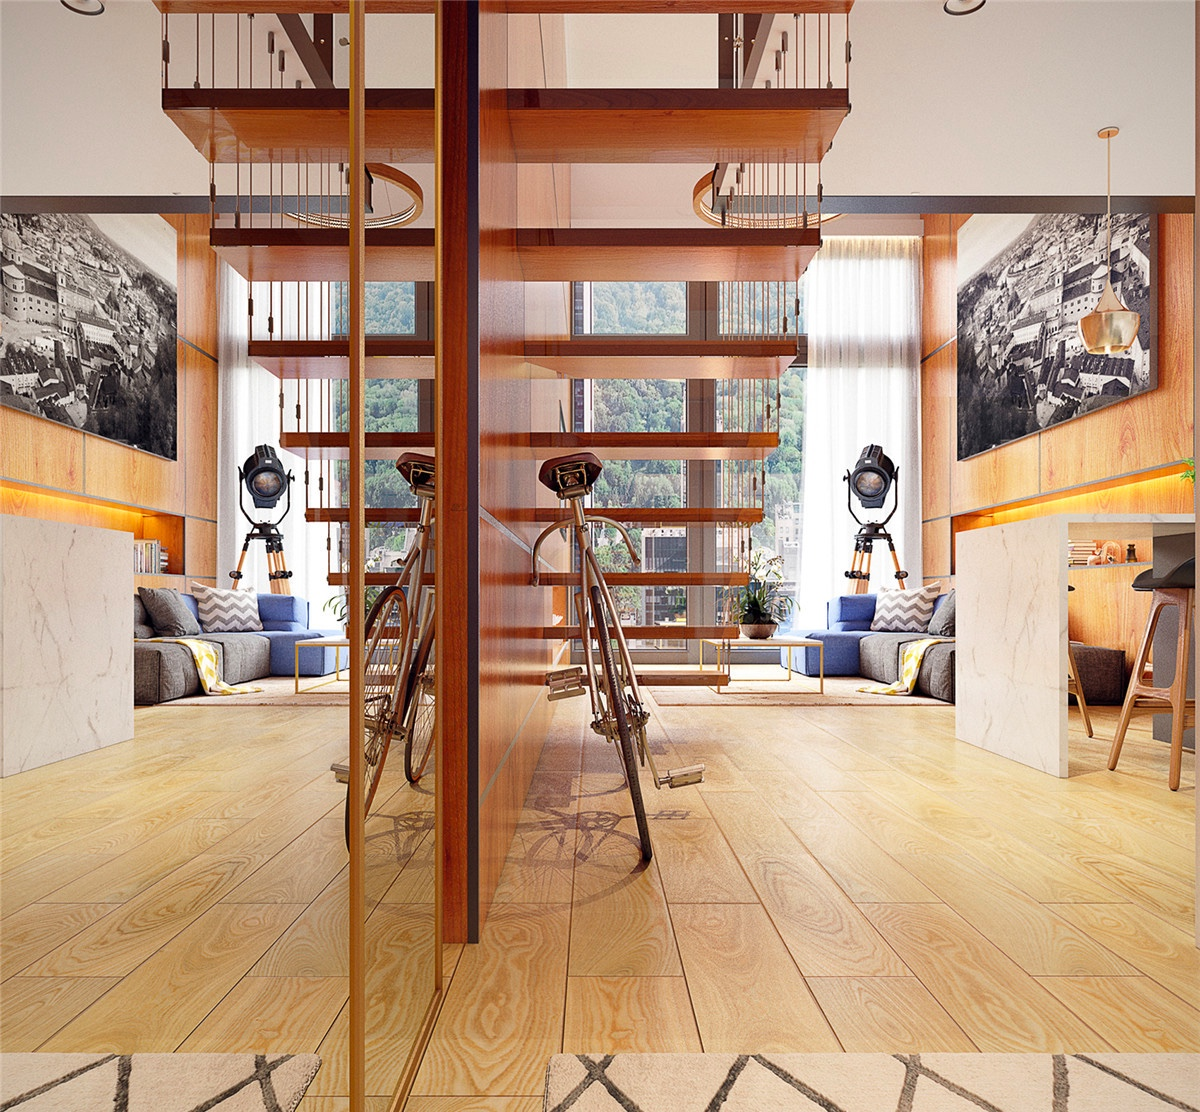 Loft Stairs For Small Spaces: Small Homes That Use Lofts To Gain More Floor Space